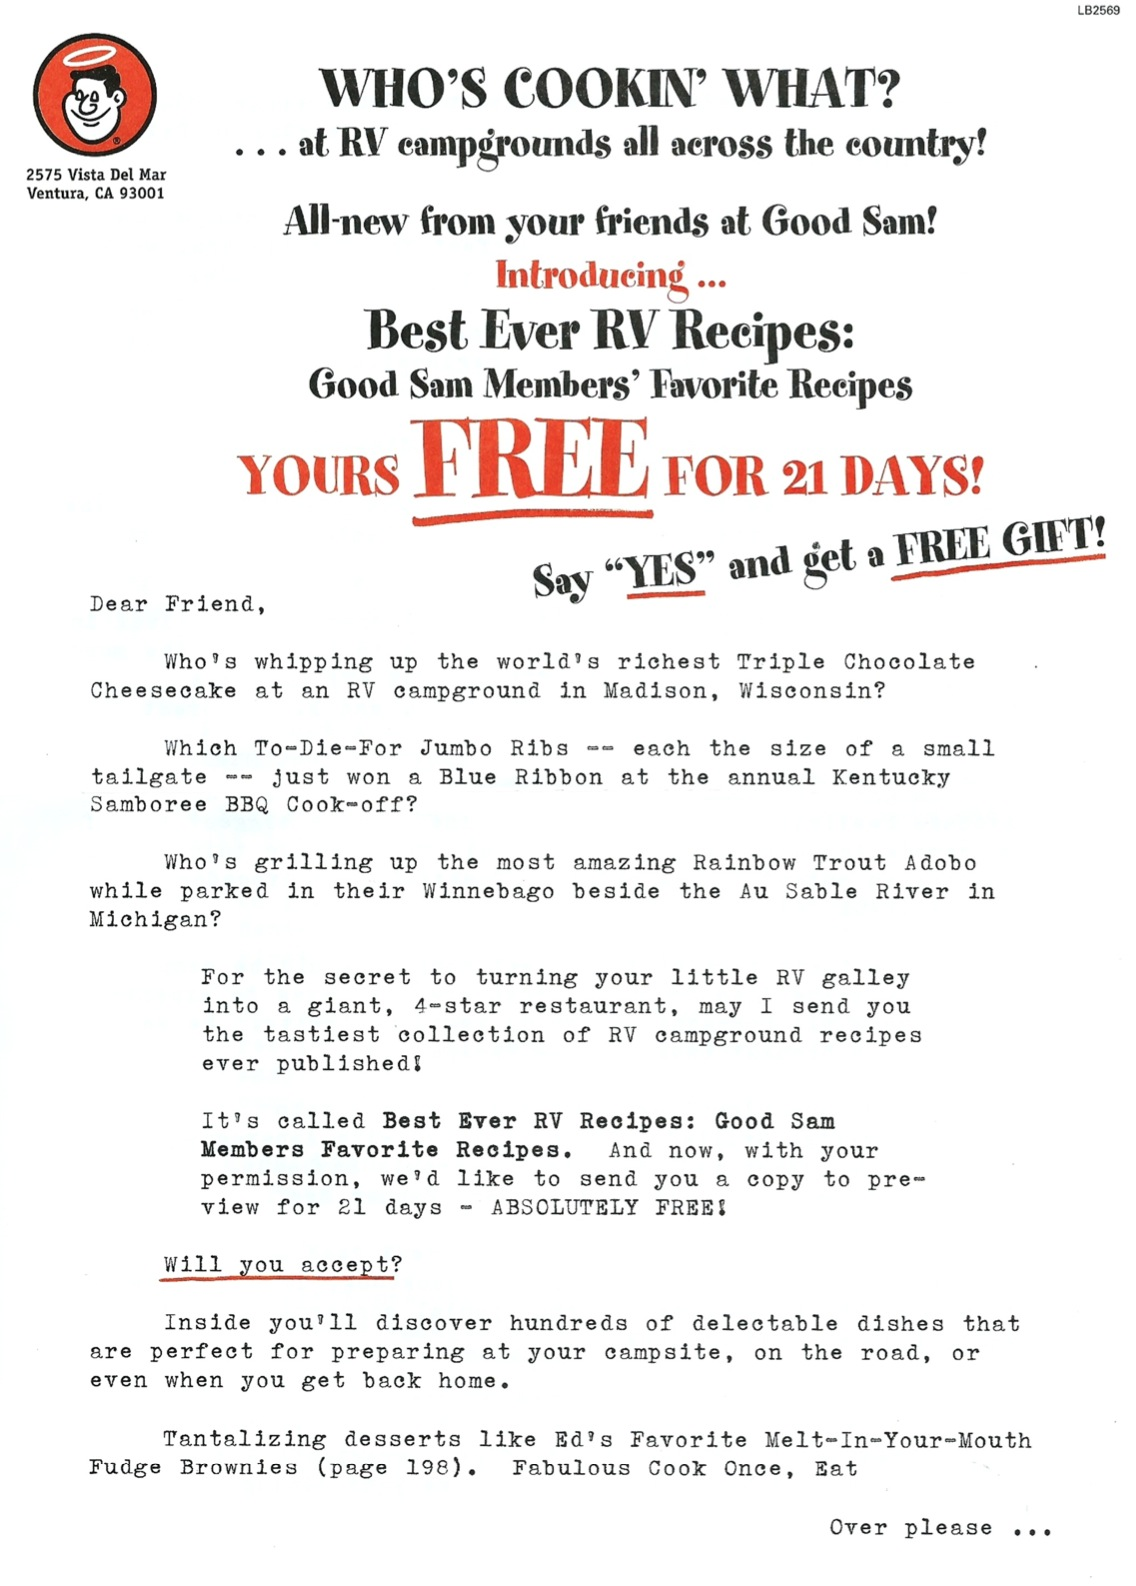 image of Best Ever RV Recipes direct mail sales letter page 1